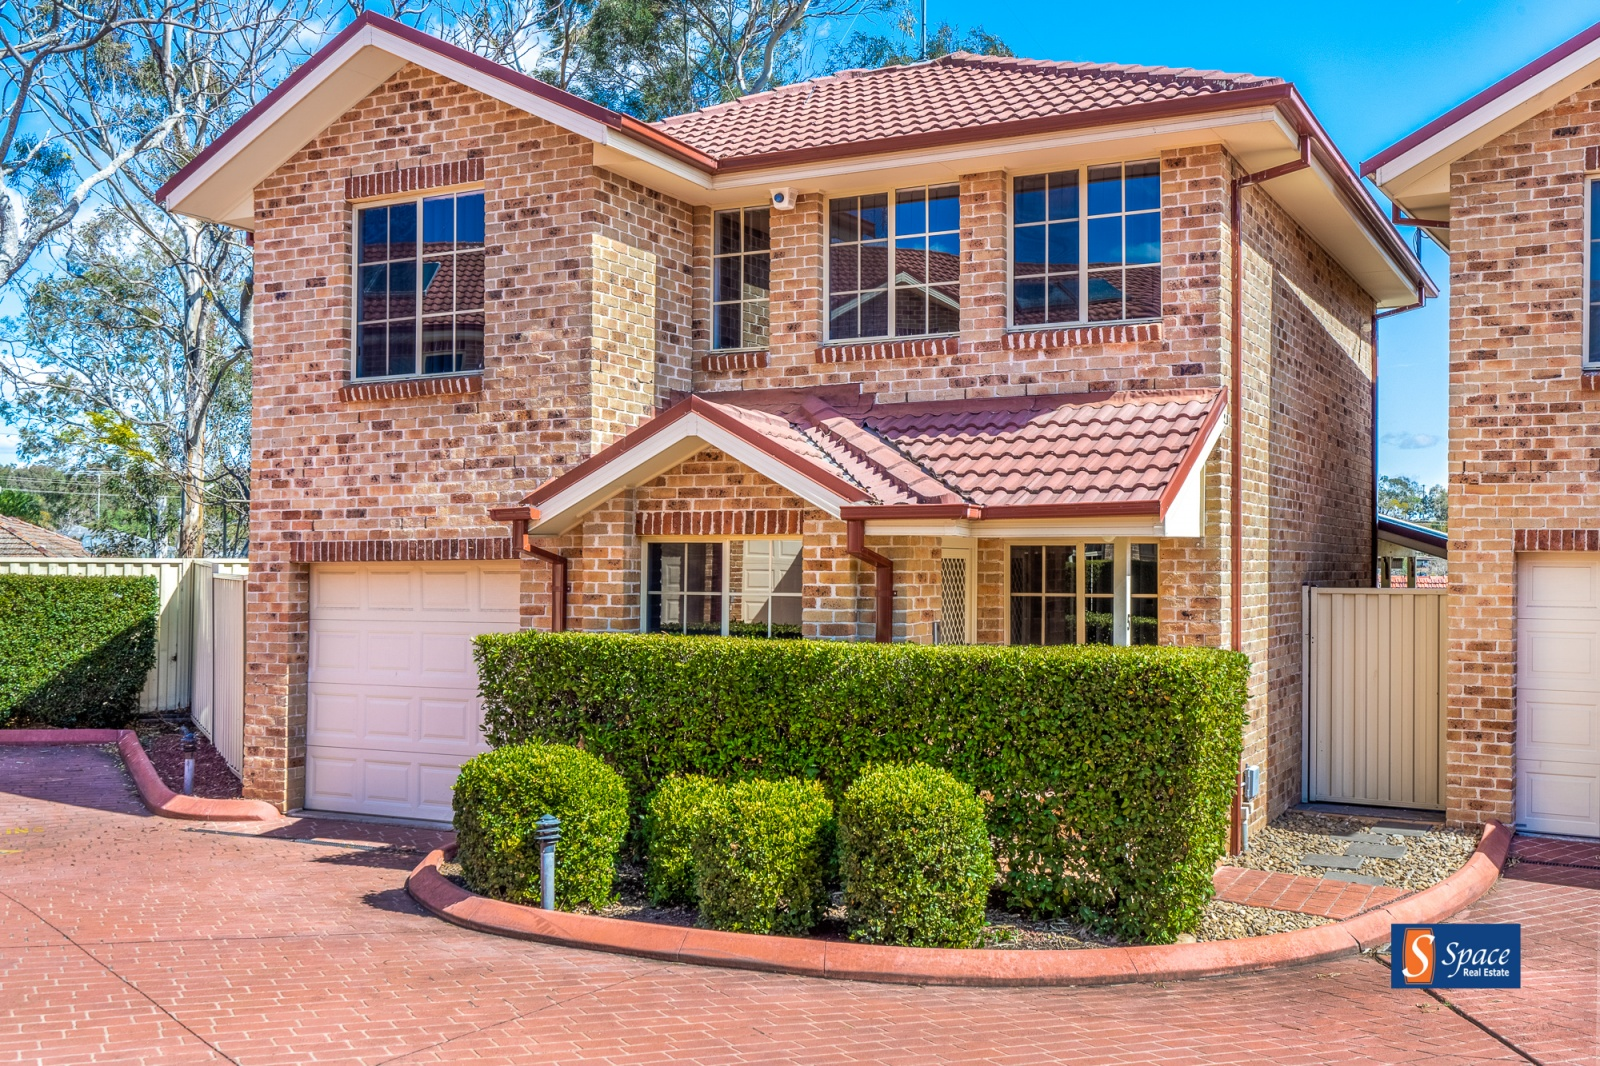 5/1-3 Meehan Place,Campbelltown,NSW,3 Bedrooms Bedrooms,2.5 BathroomsBathrooms,Townhouse,Meehan Place,1115